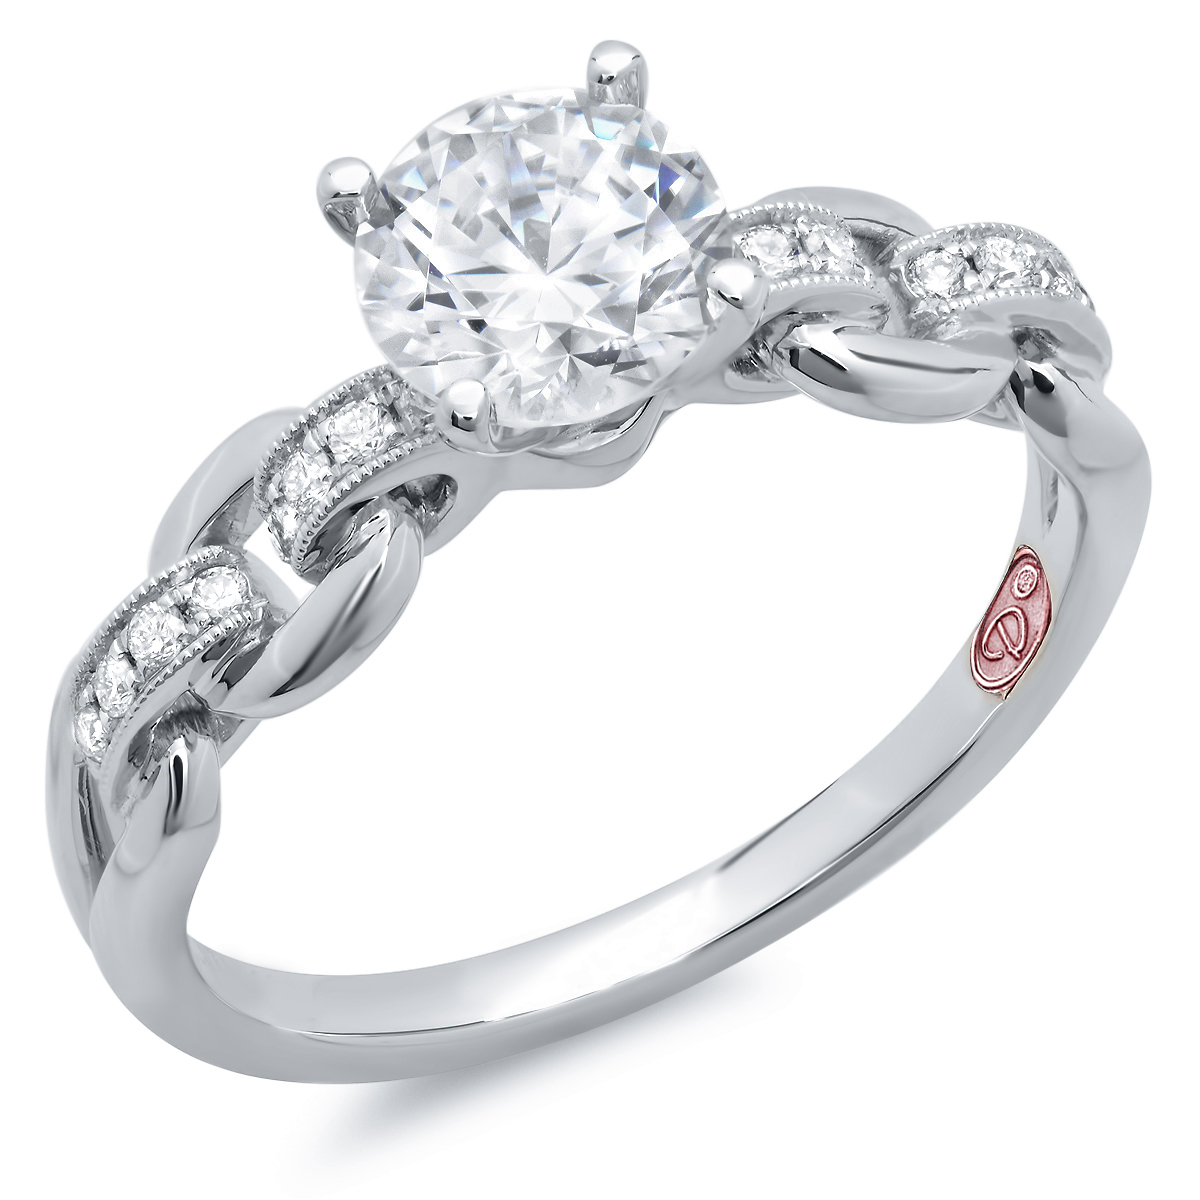 Designer Engagement Rings - DW7610